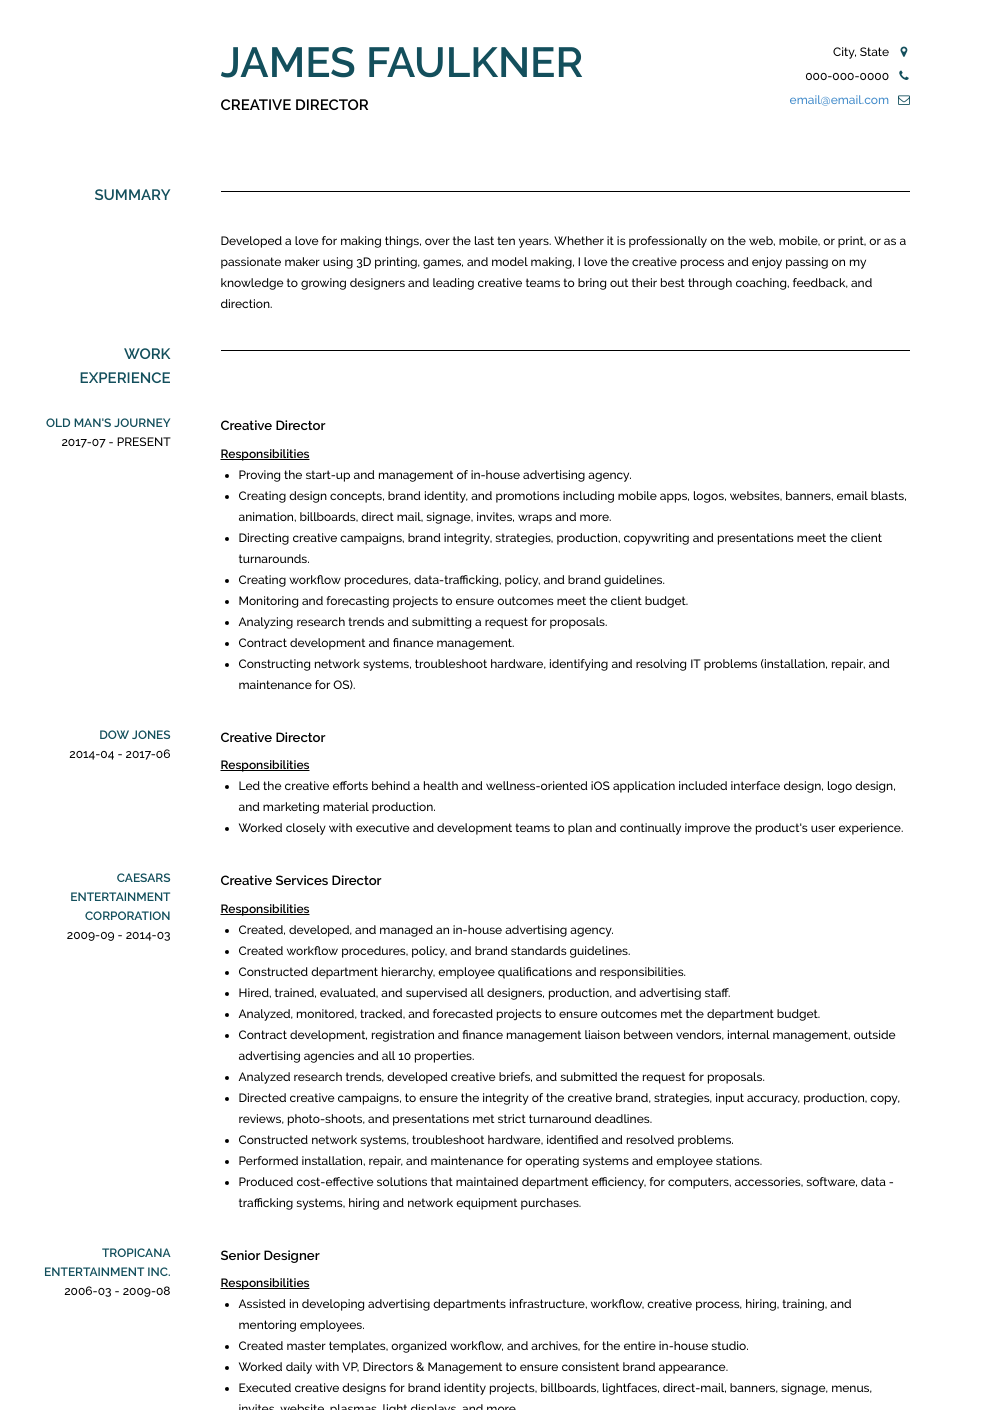 Creative Director Resume Samples And Templates Visualcv Creative Director Resume Chronological Resume